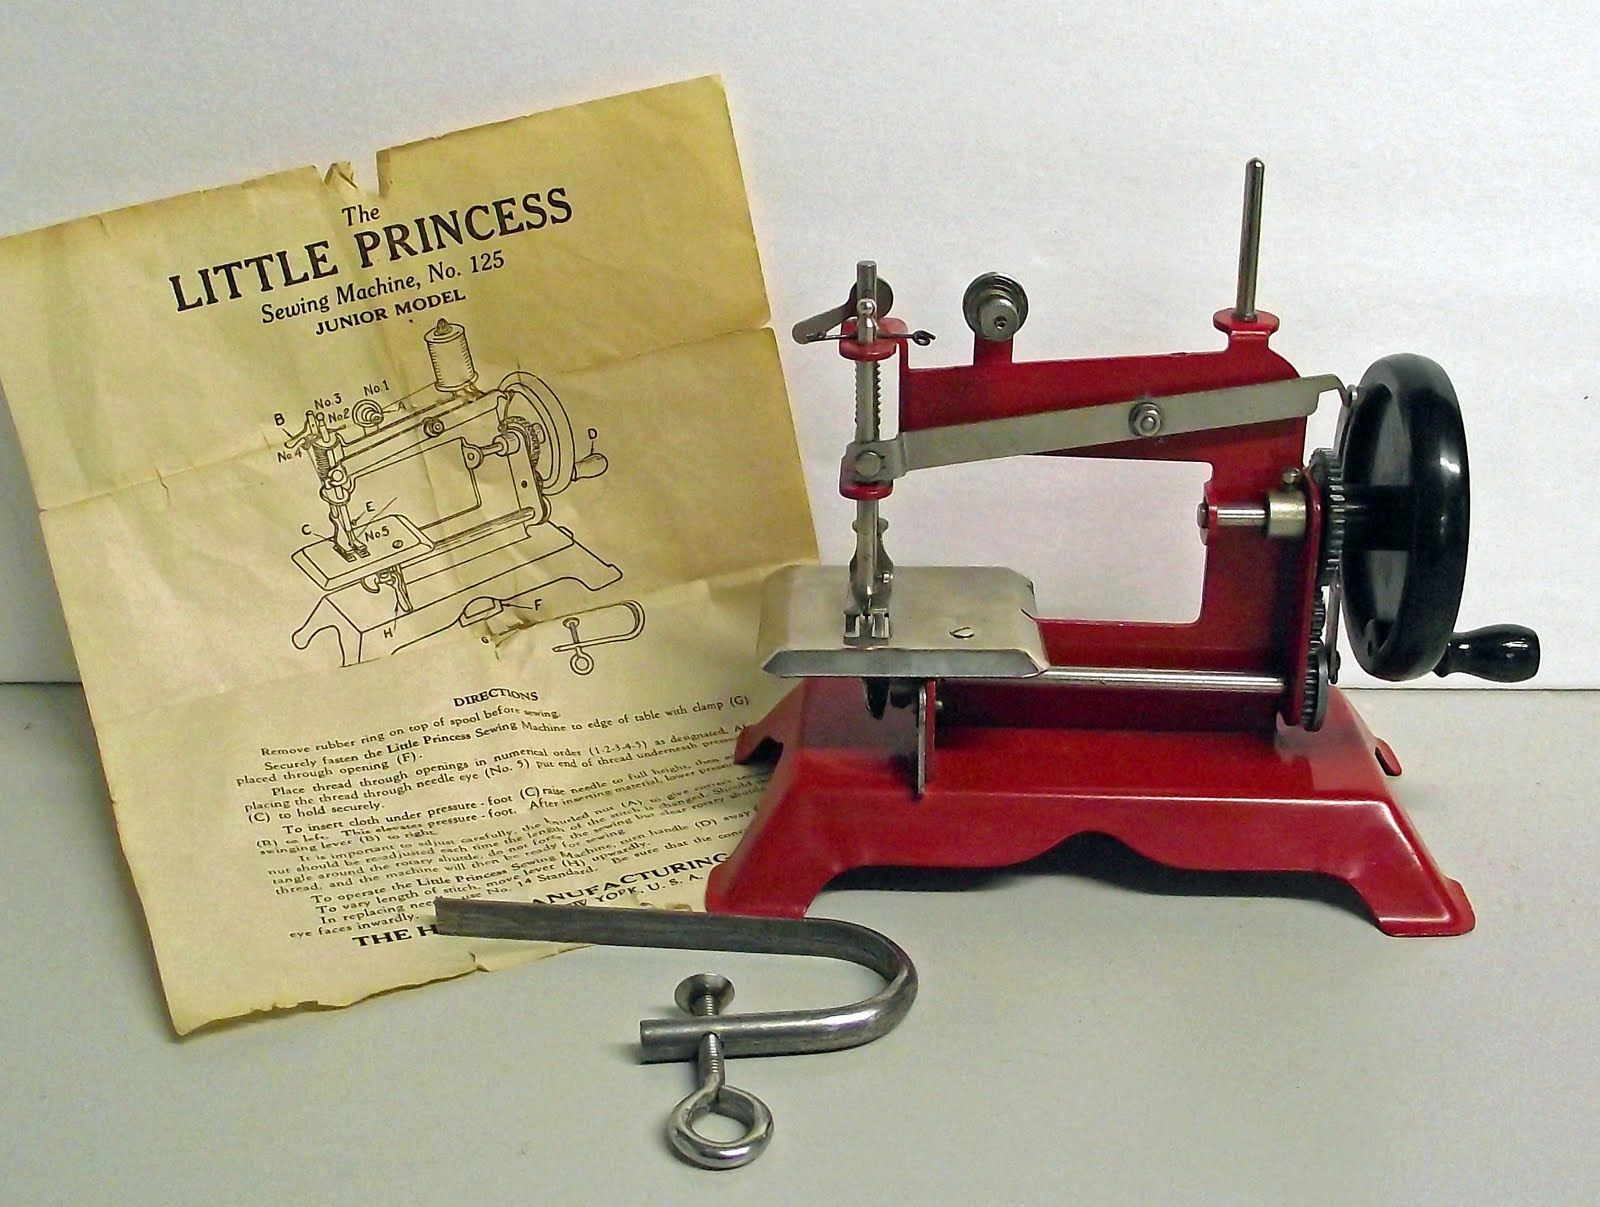 Sewing Machine Named Little Princess I Always Cry When Watch That Necchi Bu Threading Diagram Movie With Shirley Templelooove The Machines Or Just